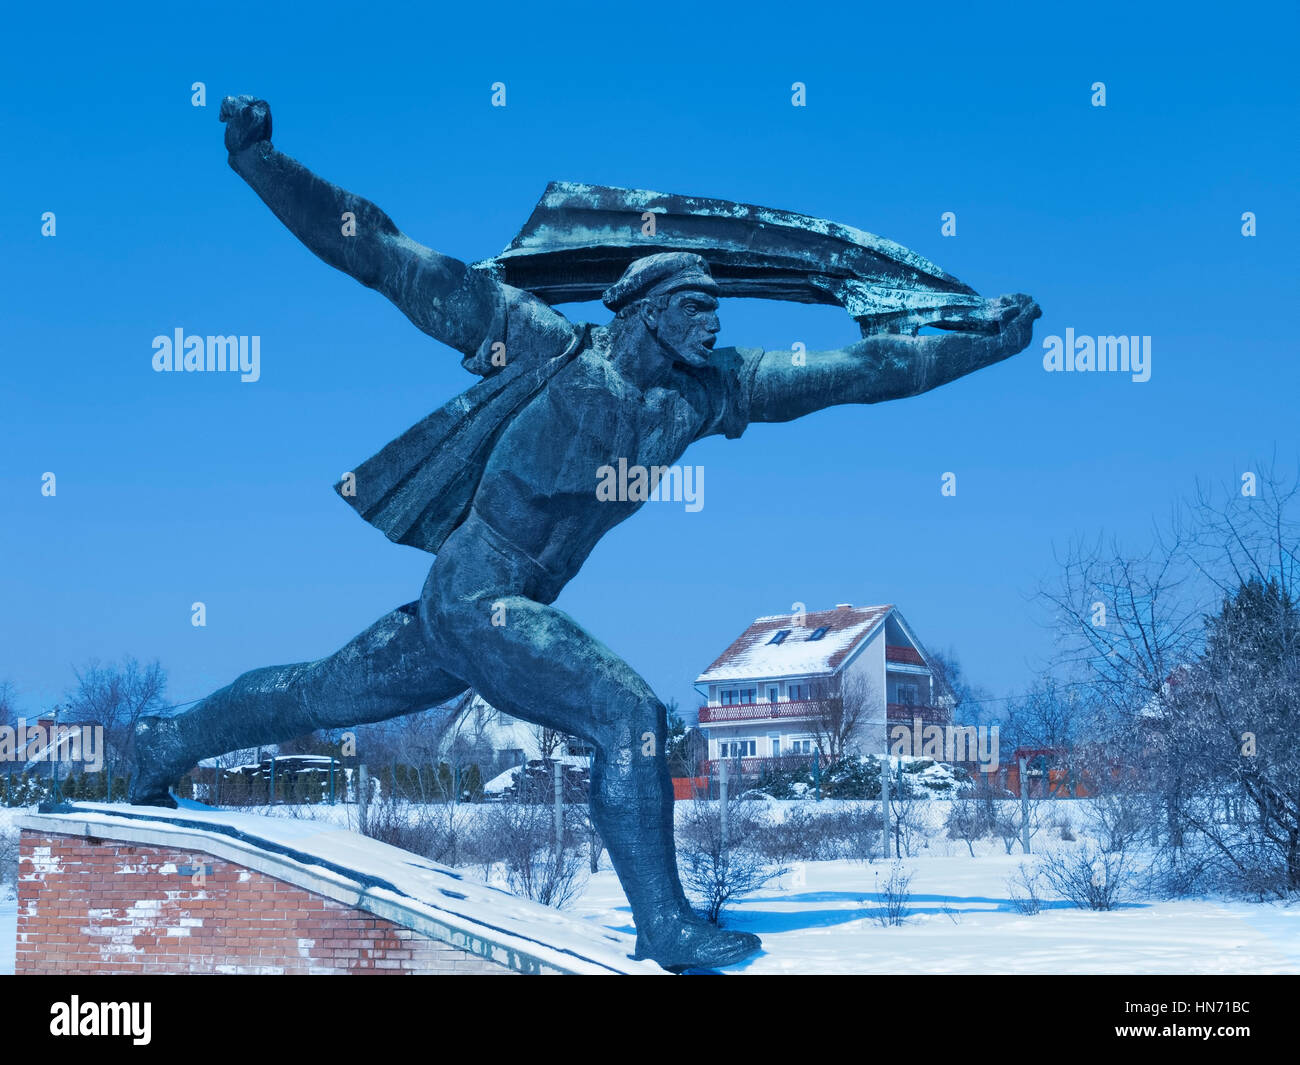 The memorial to the  Hungarian Socialist Republic, one of the statues in a Snow covered Memento Park, Budapest.. - Stock Image